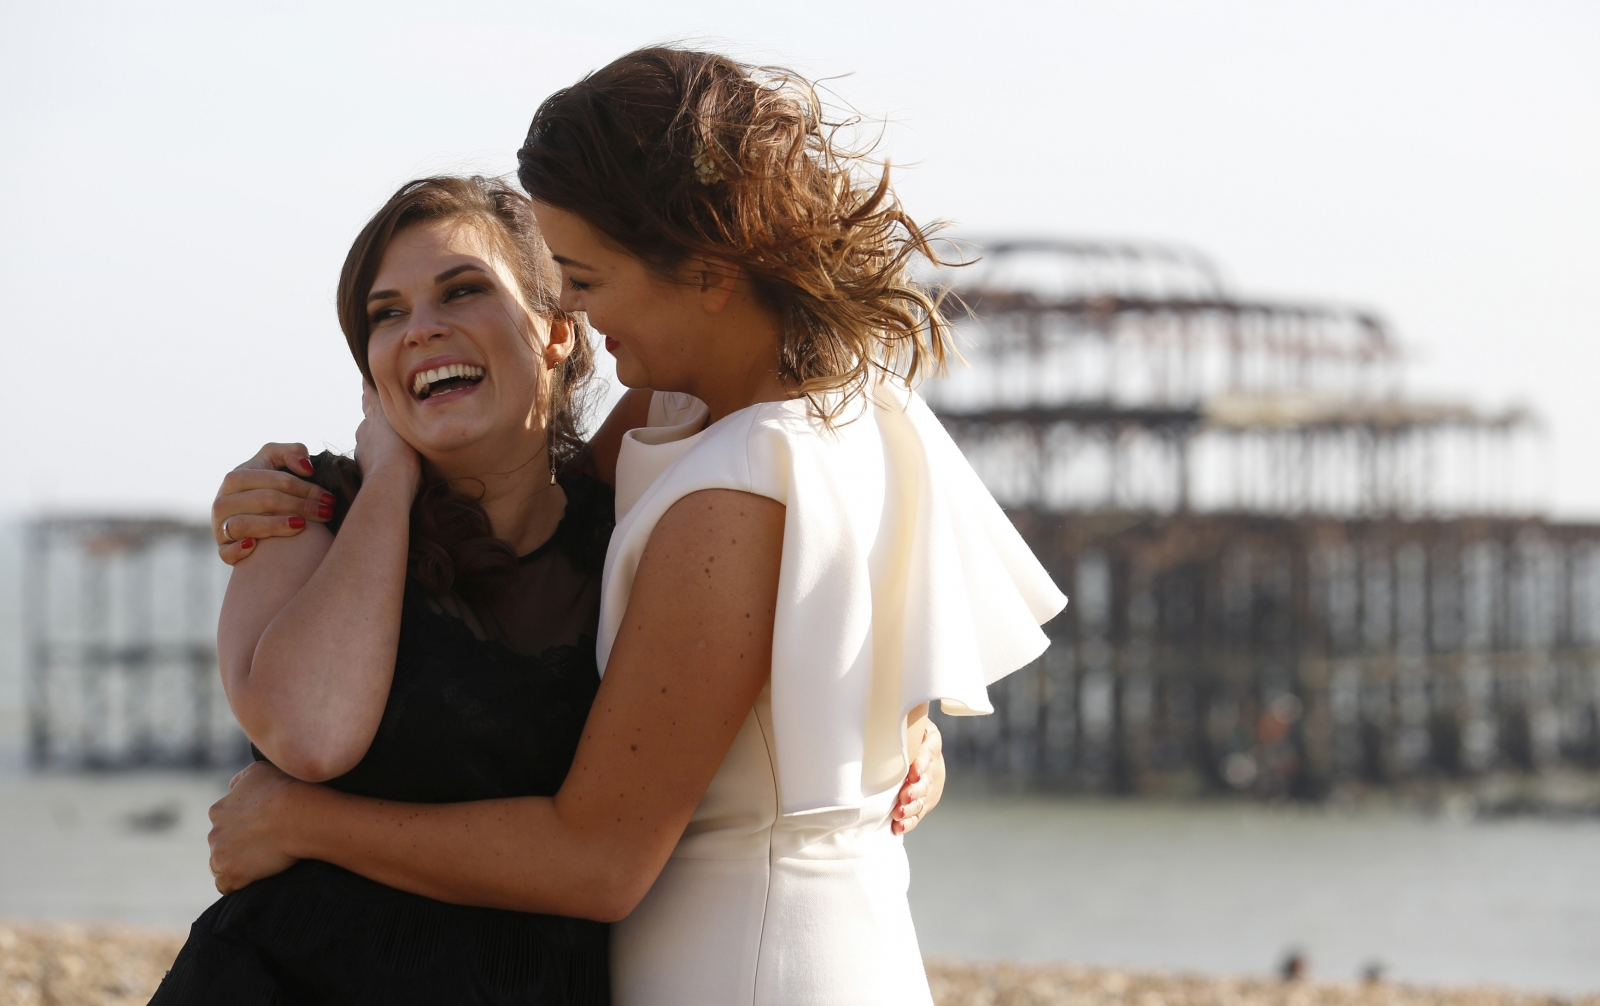 Lesbian couple Sarah Keith (R) and Emma Powell pose for photographs after their same-sex wedding at the Claremont Hotel in Brighton, southern England